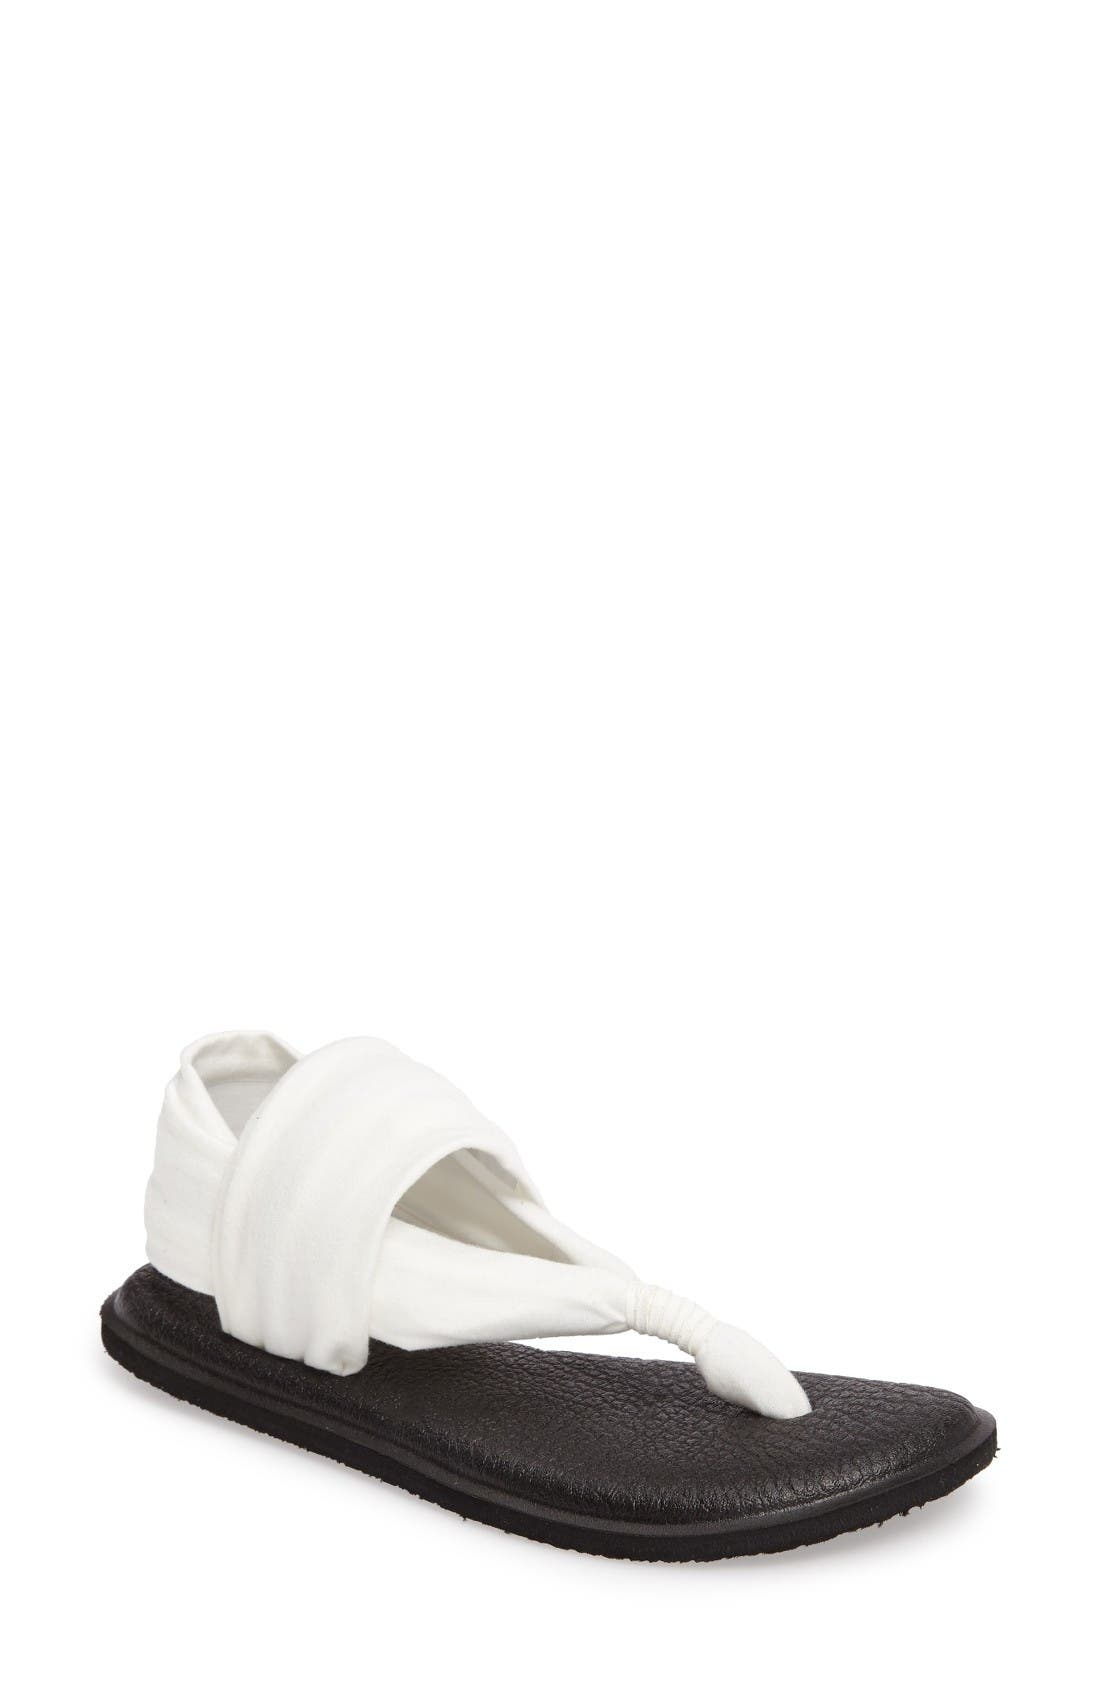 'Yoga Sling 2' Sandal,                         Main,                         color, White